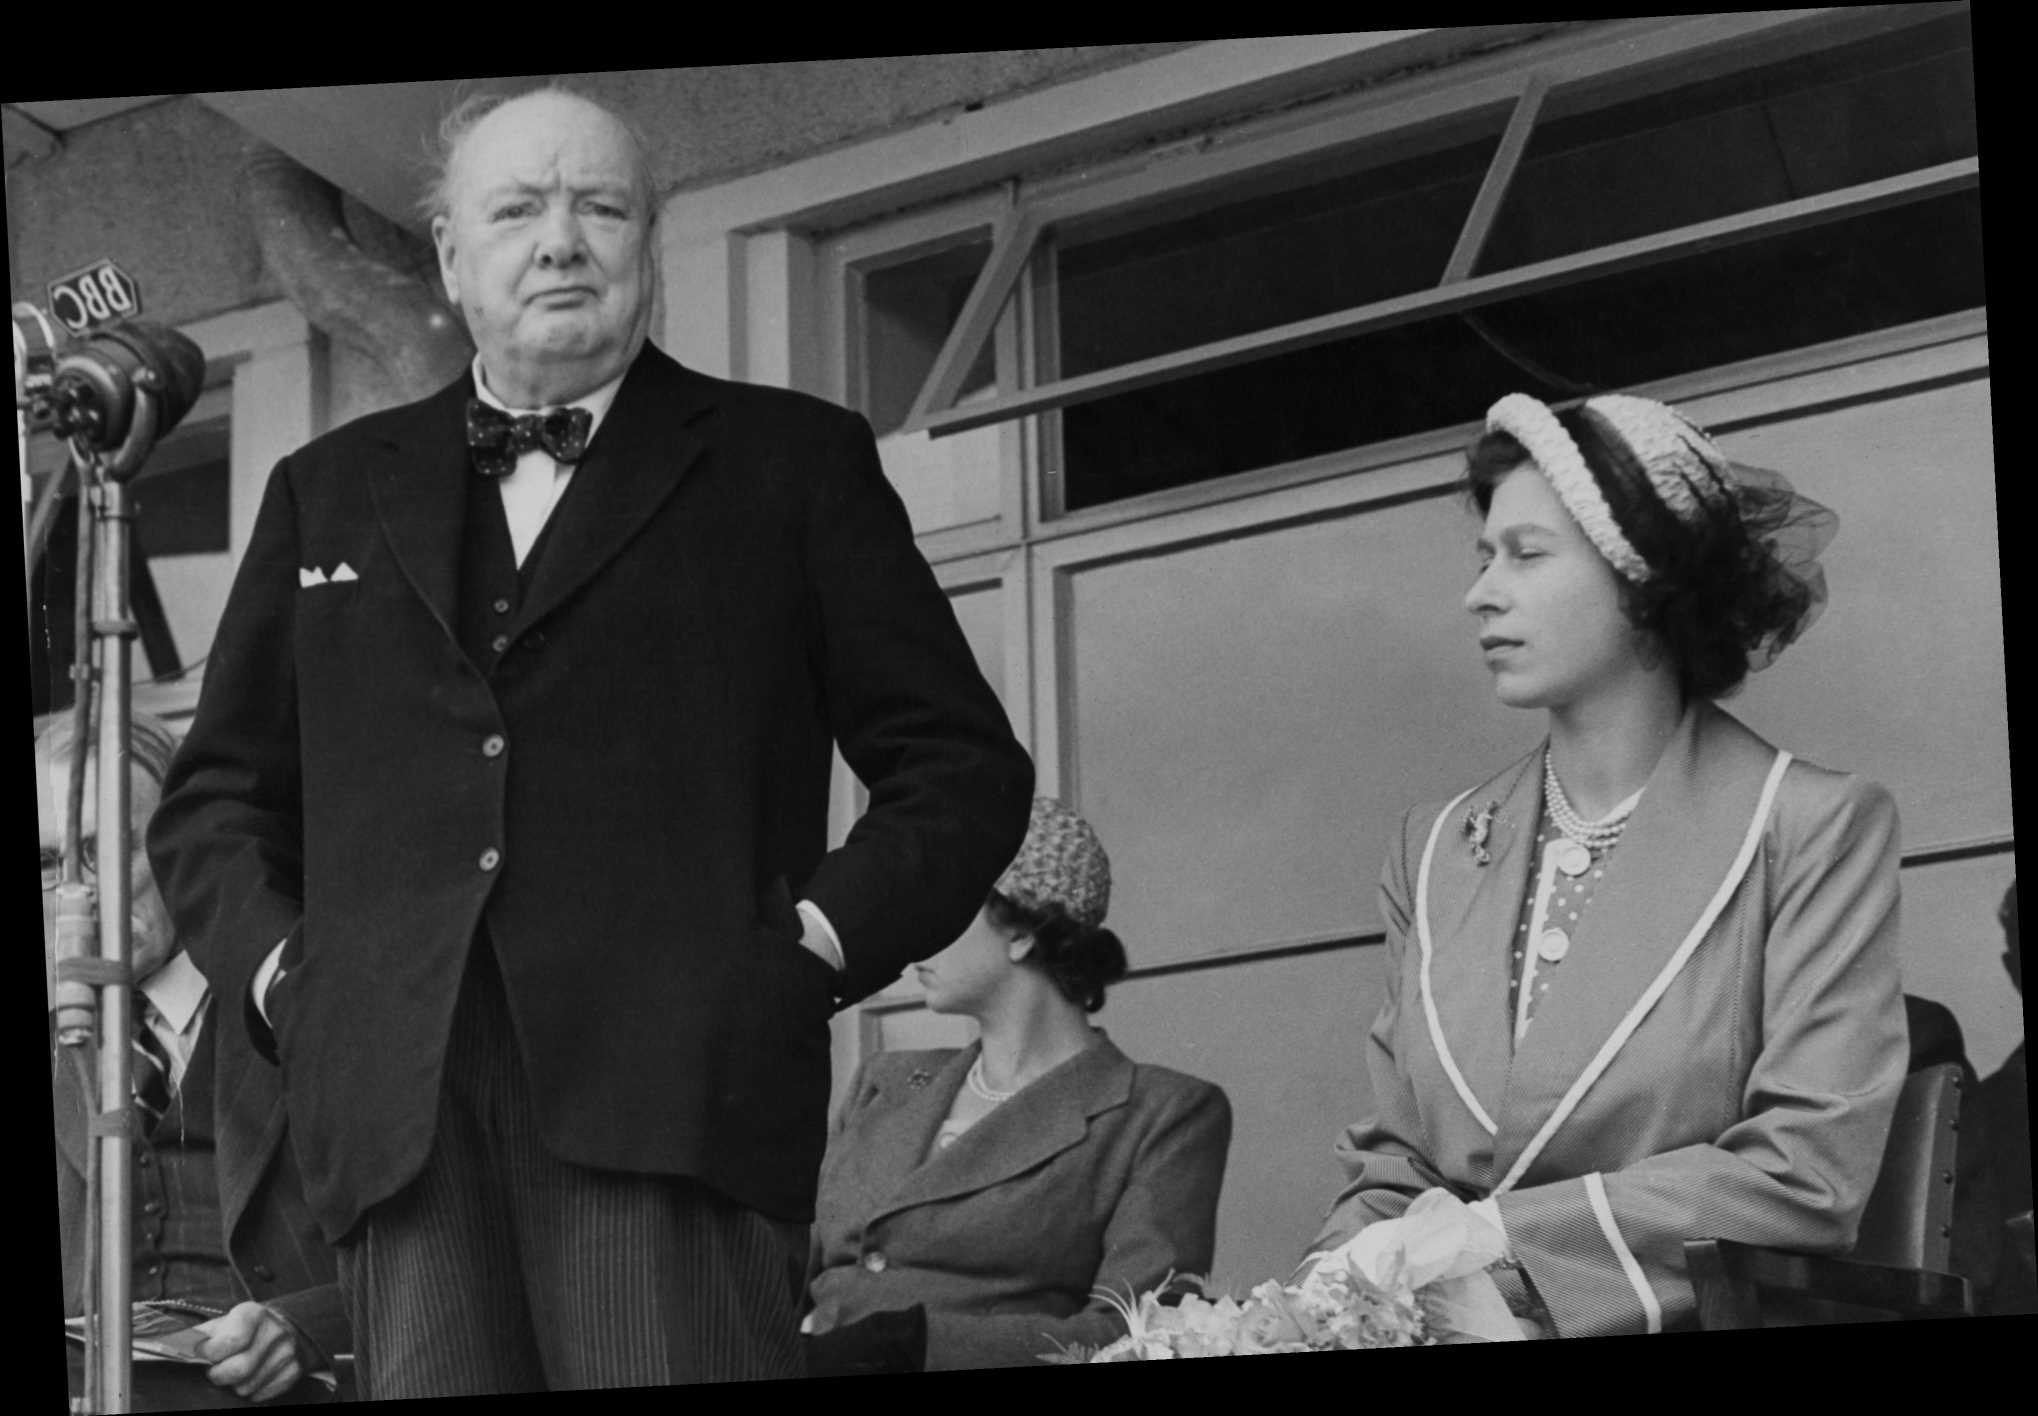 Winston Churchill cried 'but she's just a child' before first meeting The Queen at 25, historian claims